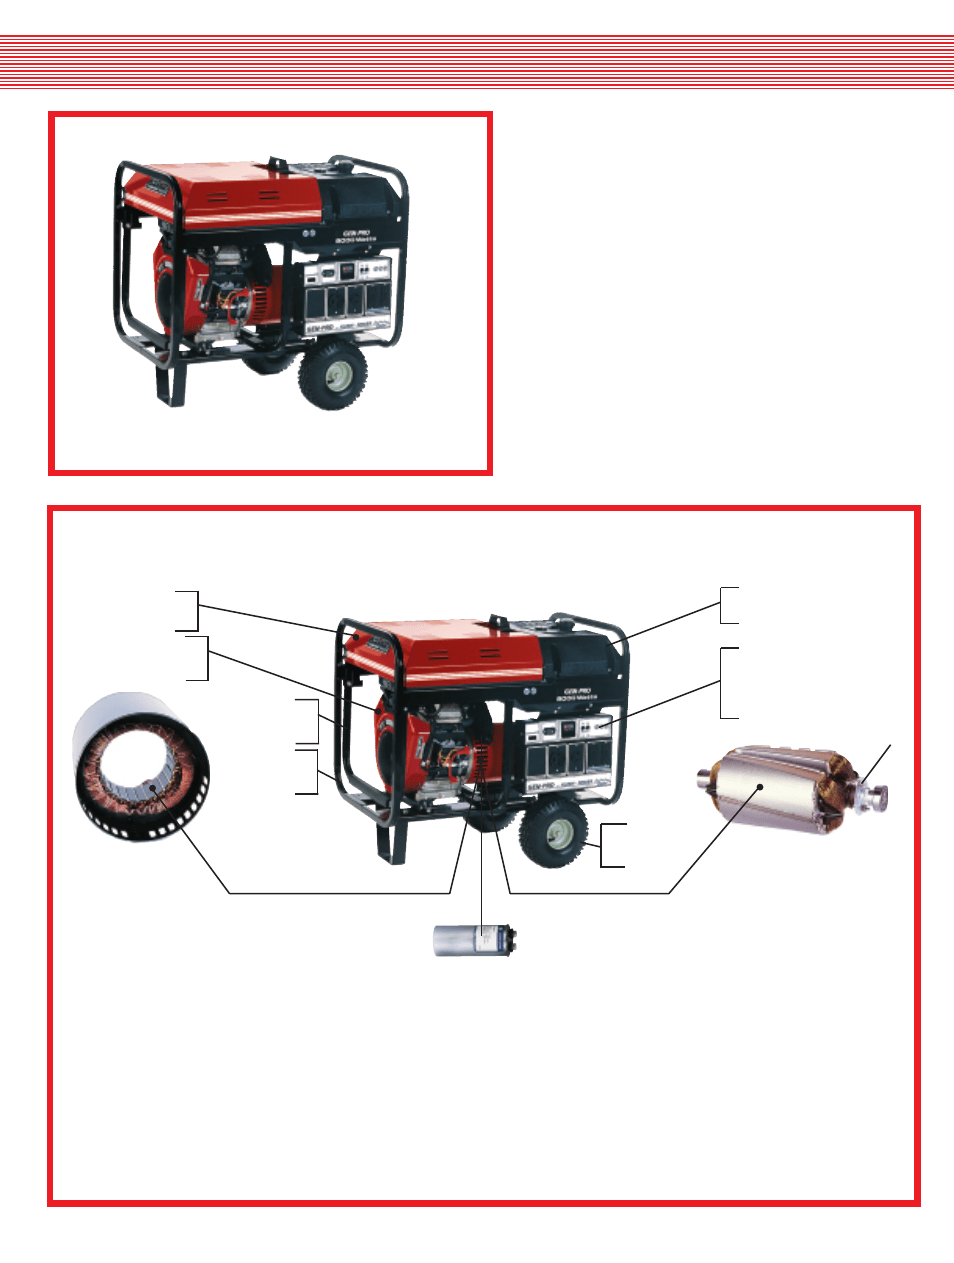 hight resolution of kleen power generators why is gen pro unique and different from the rest gillette portable generators user manual page 3 6